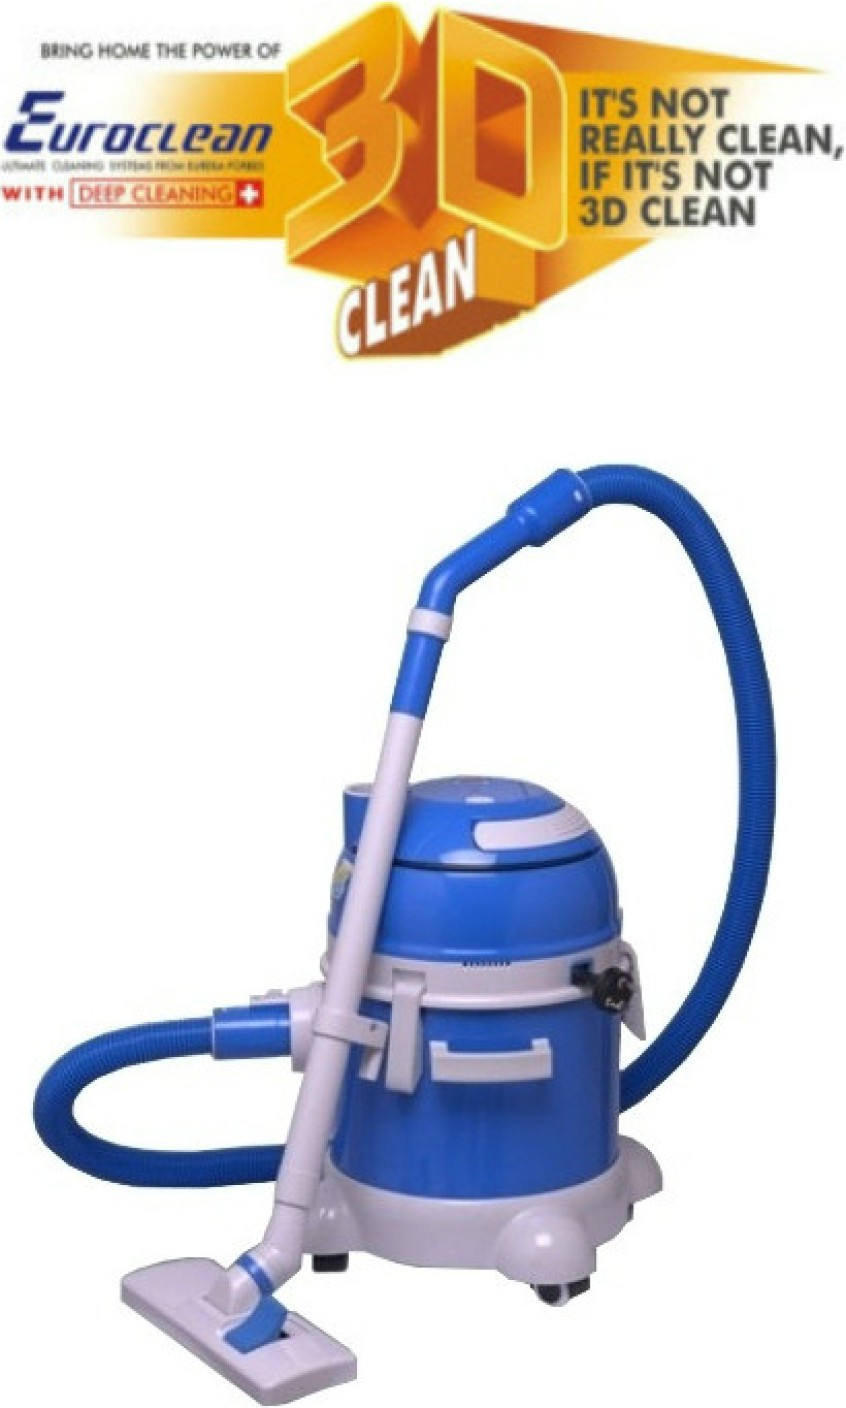 Eureka Forbes Wet Amp Dry Cleaner Wet Amp Dry Cleaner Price In